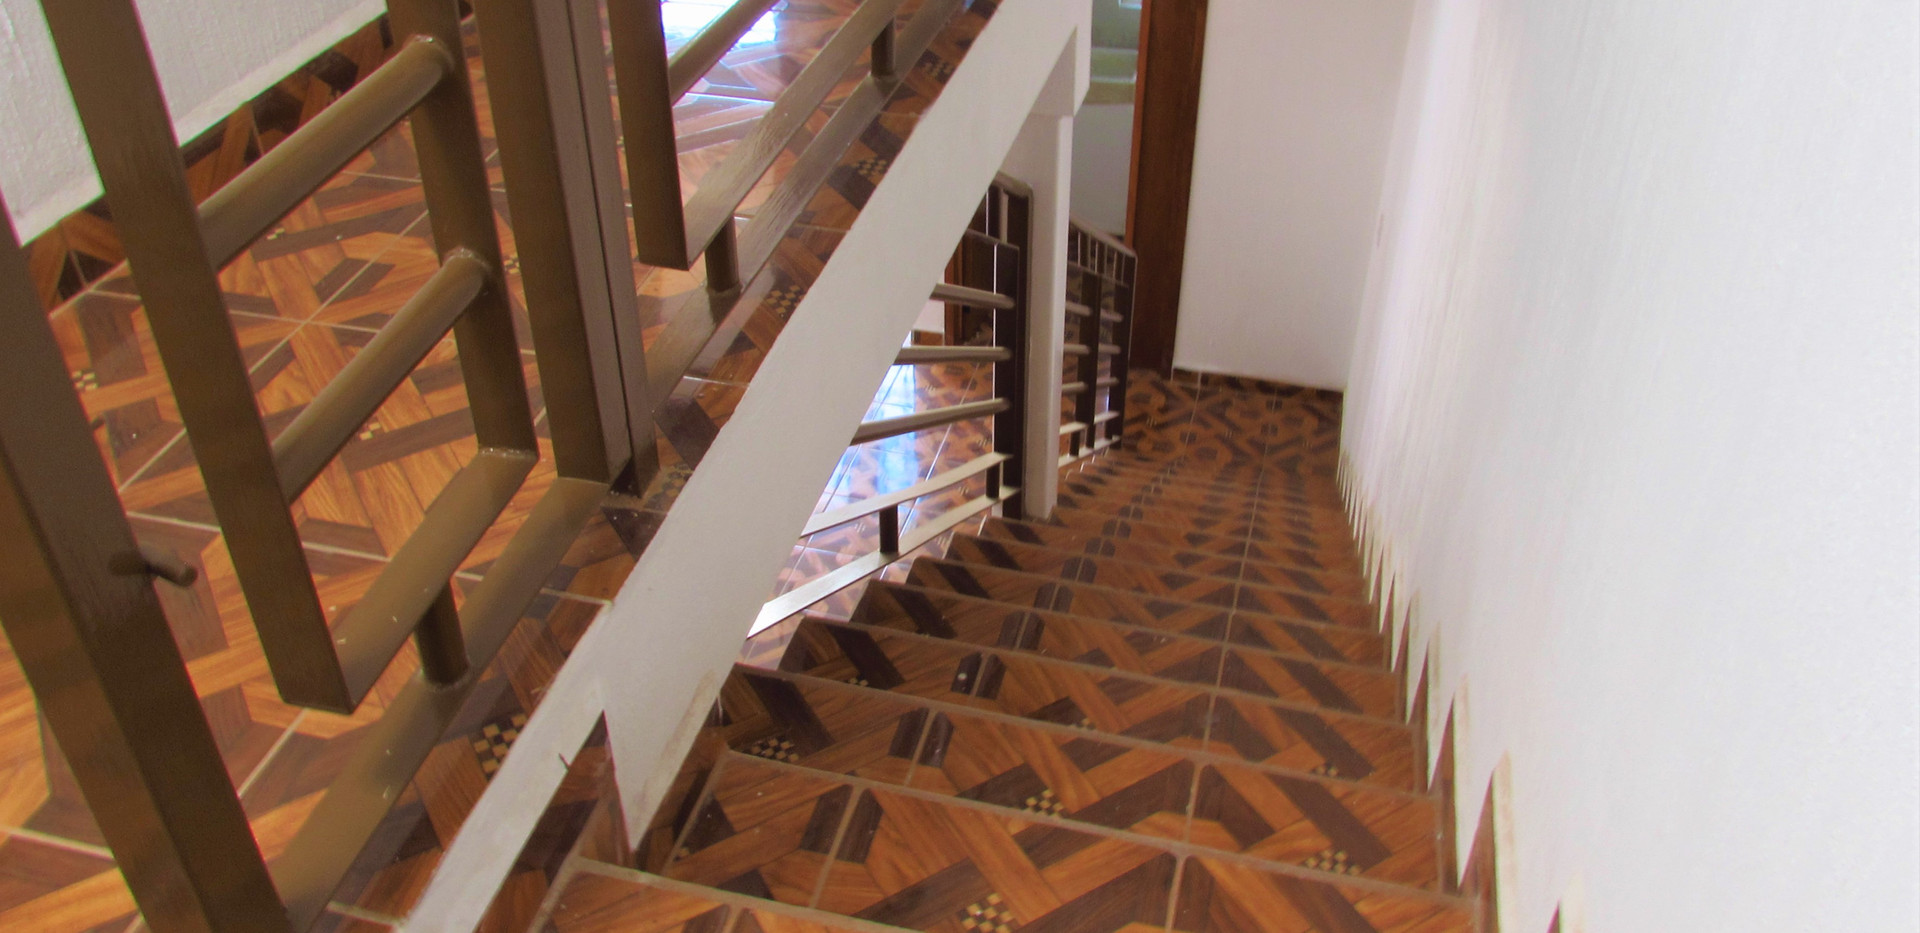 Stairs to the third floor